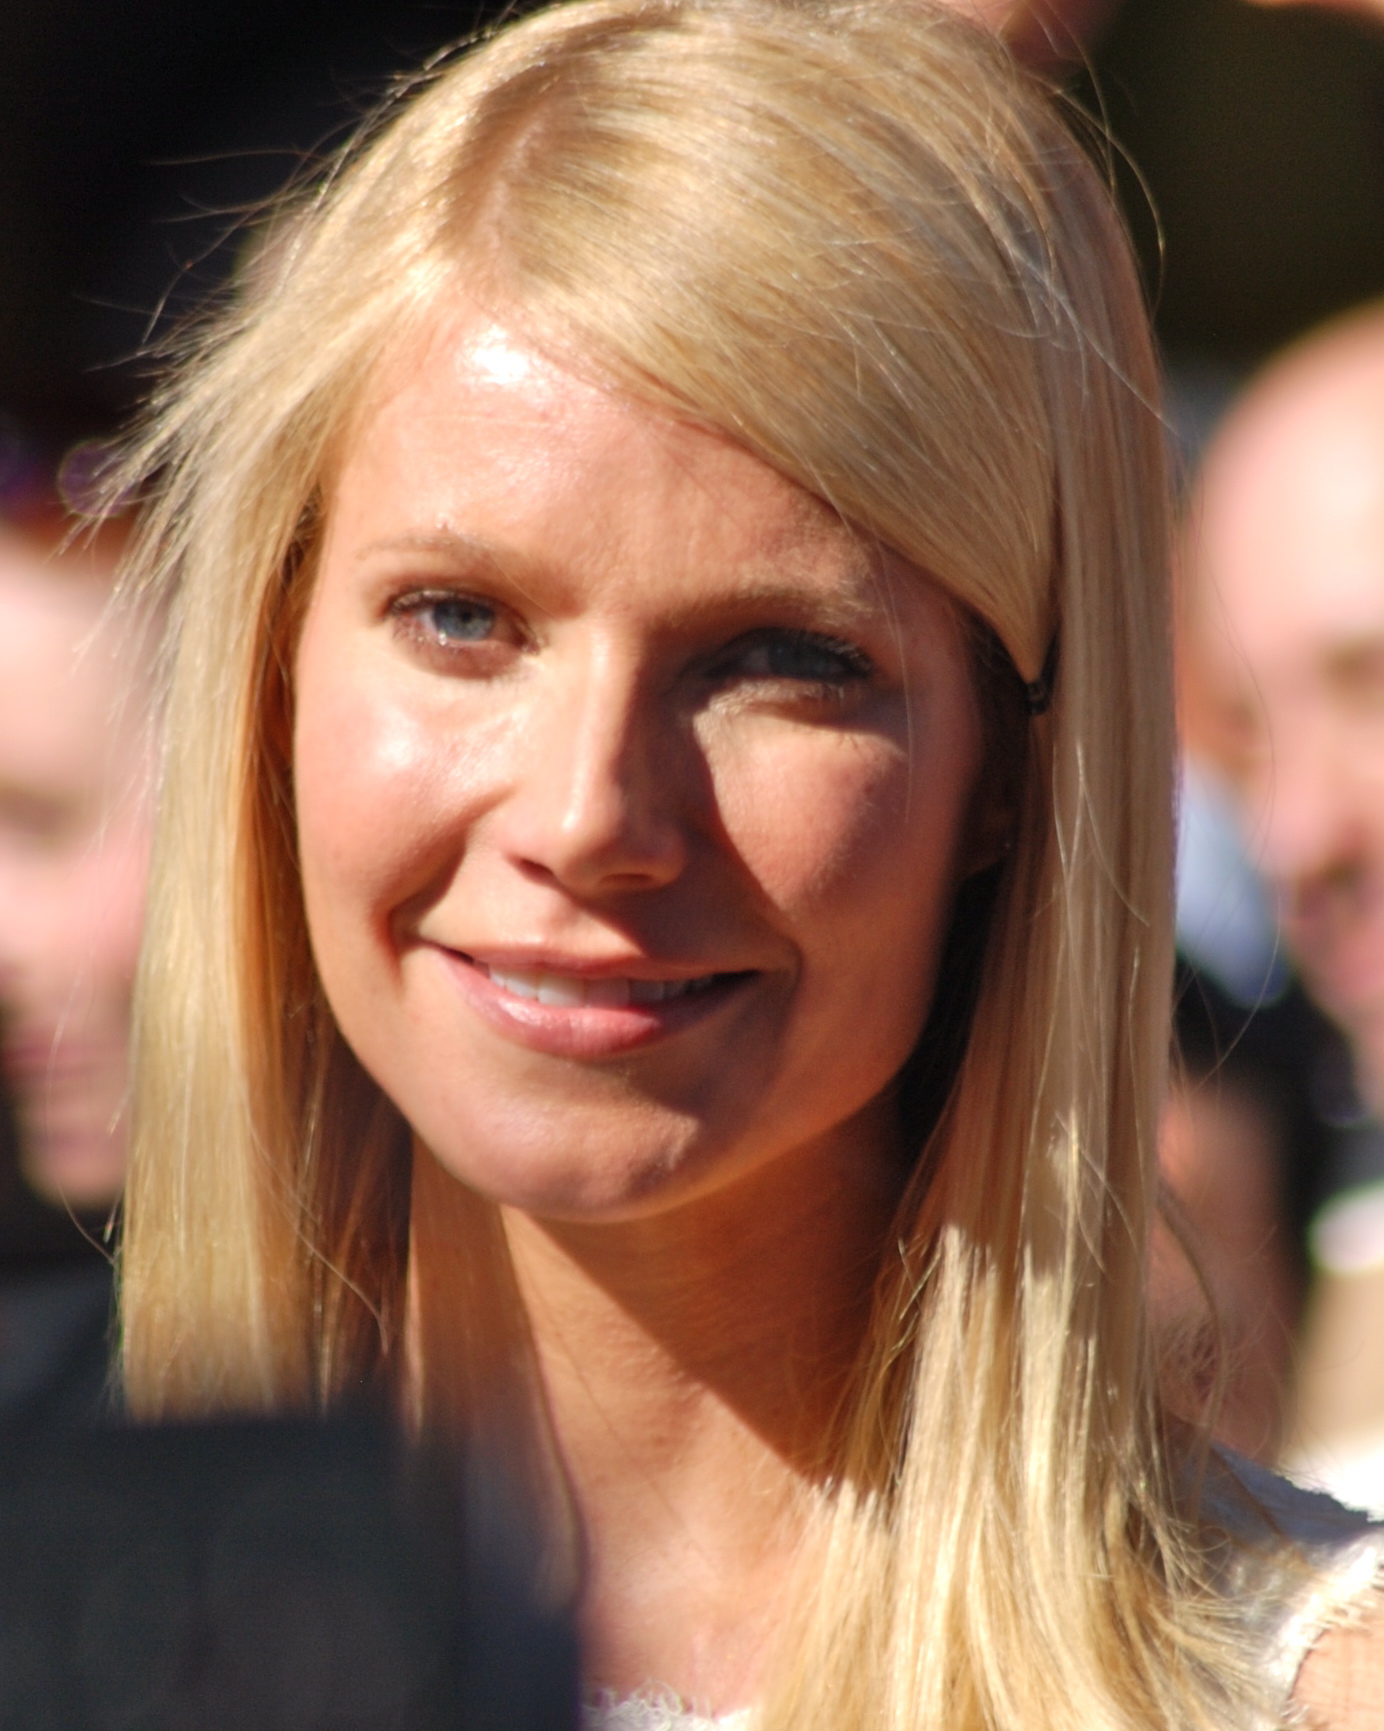 Gwyneth Paltrow Is Now In The Poorly Regulated Often Scammy Online